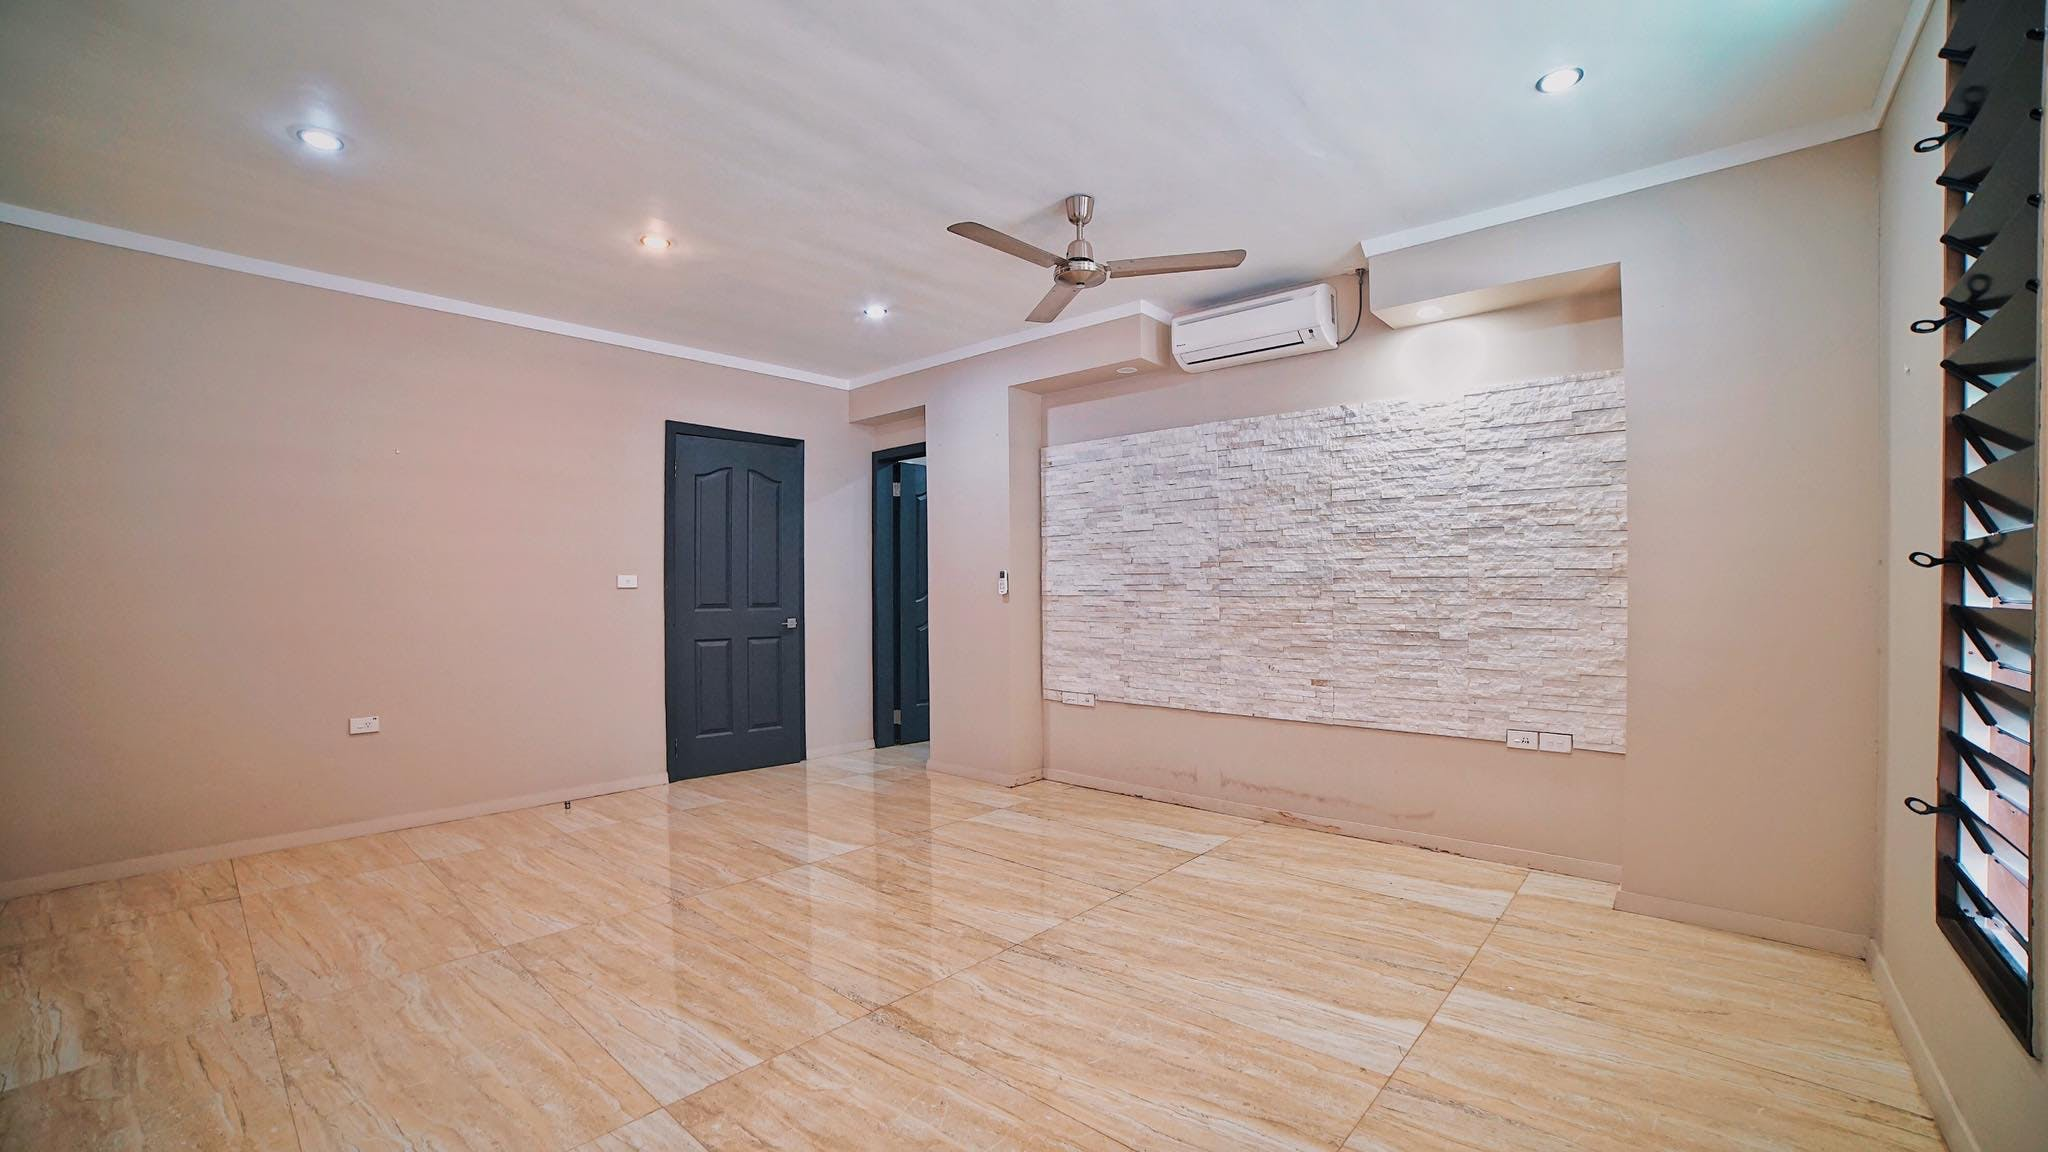 4 Bedroom Executive House For Rent